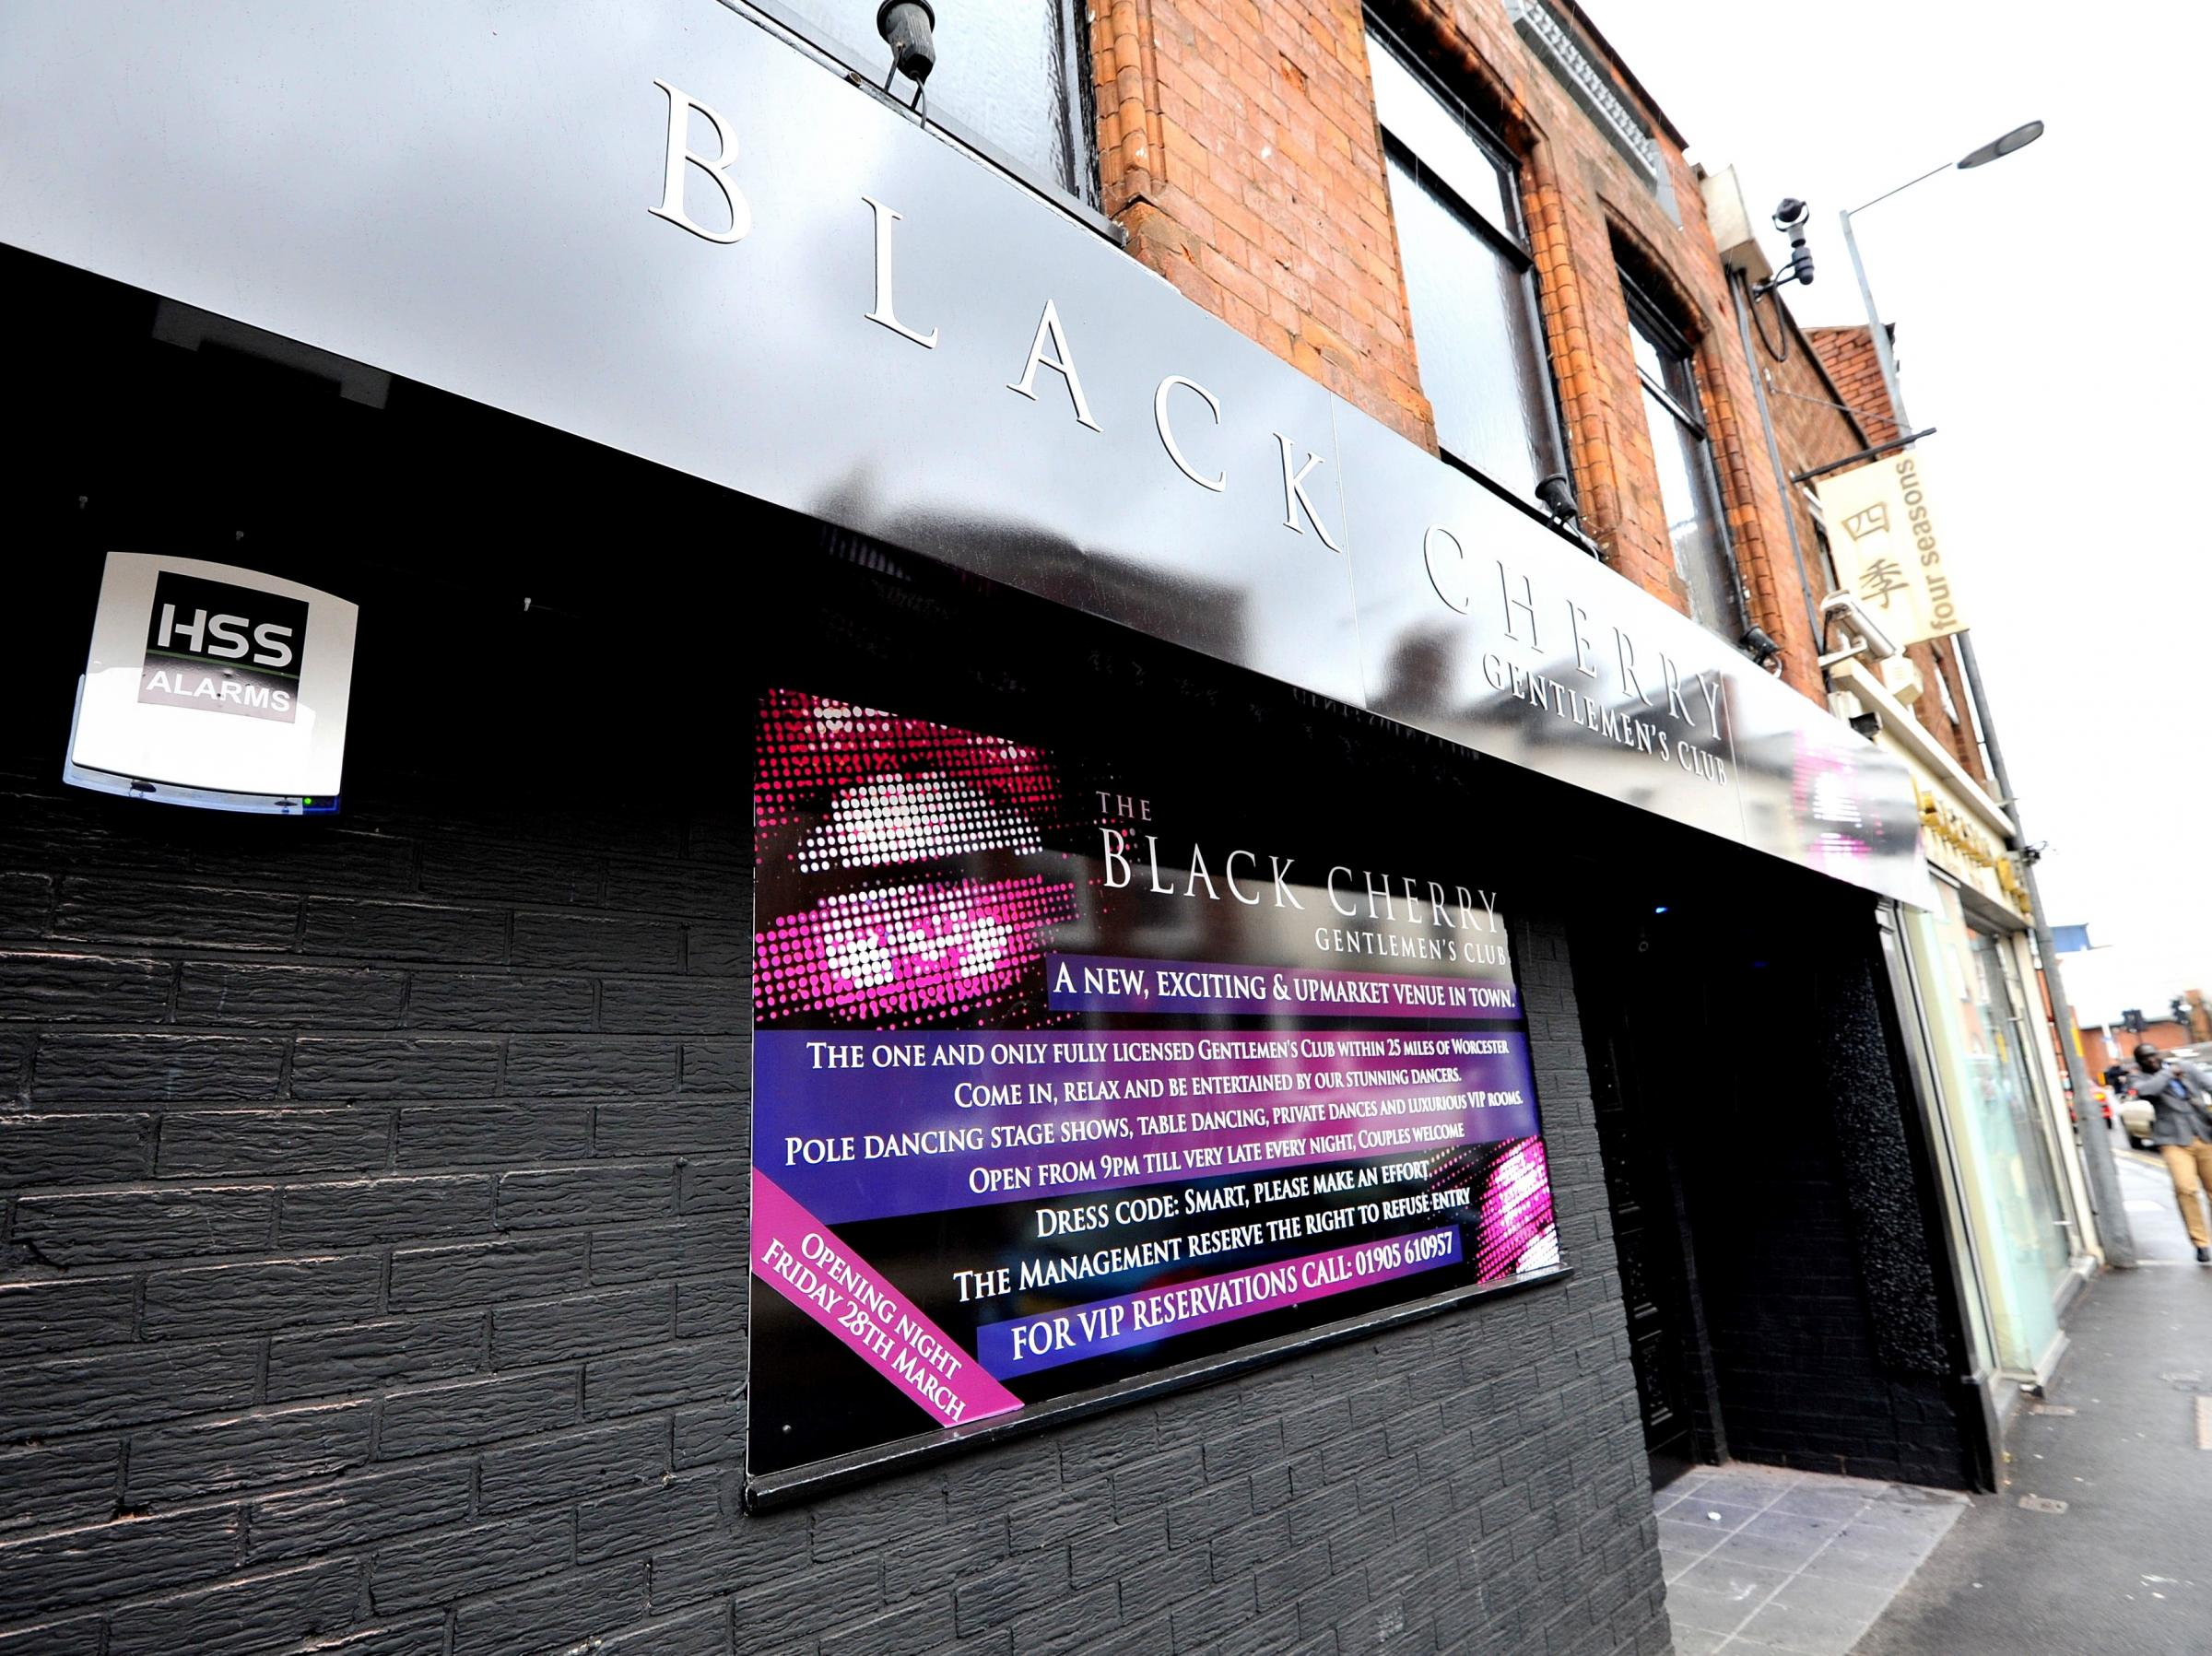 Lap-dance club in Worcester needs sex licence or will be forced to shut